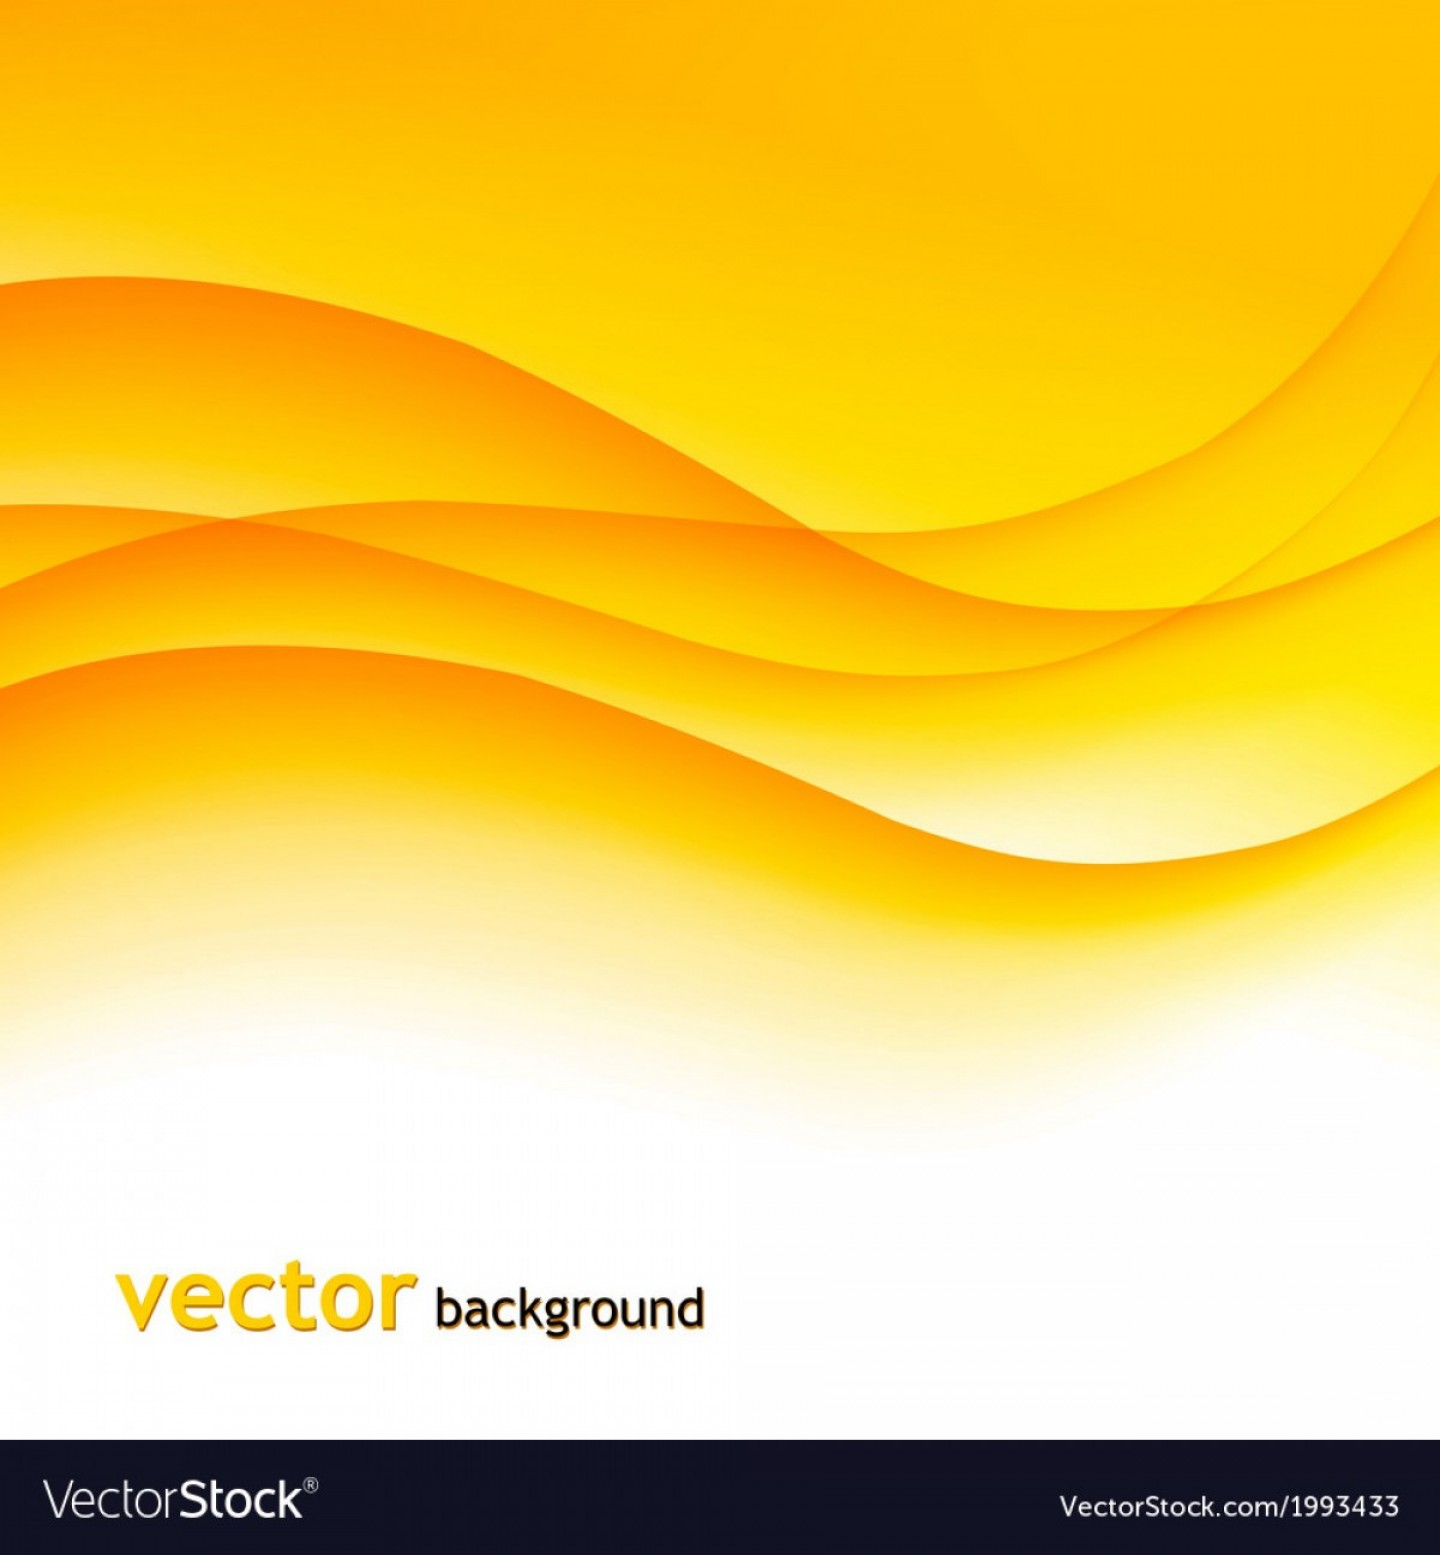 Vave Vector: Abstract Colorful Background With Orange Wave Vector